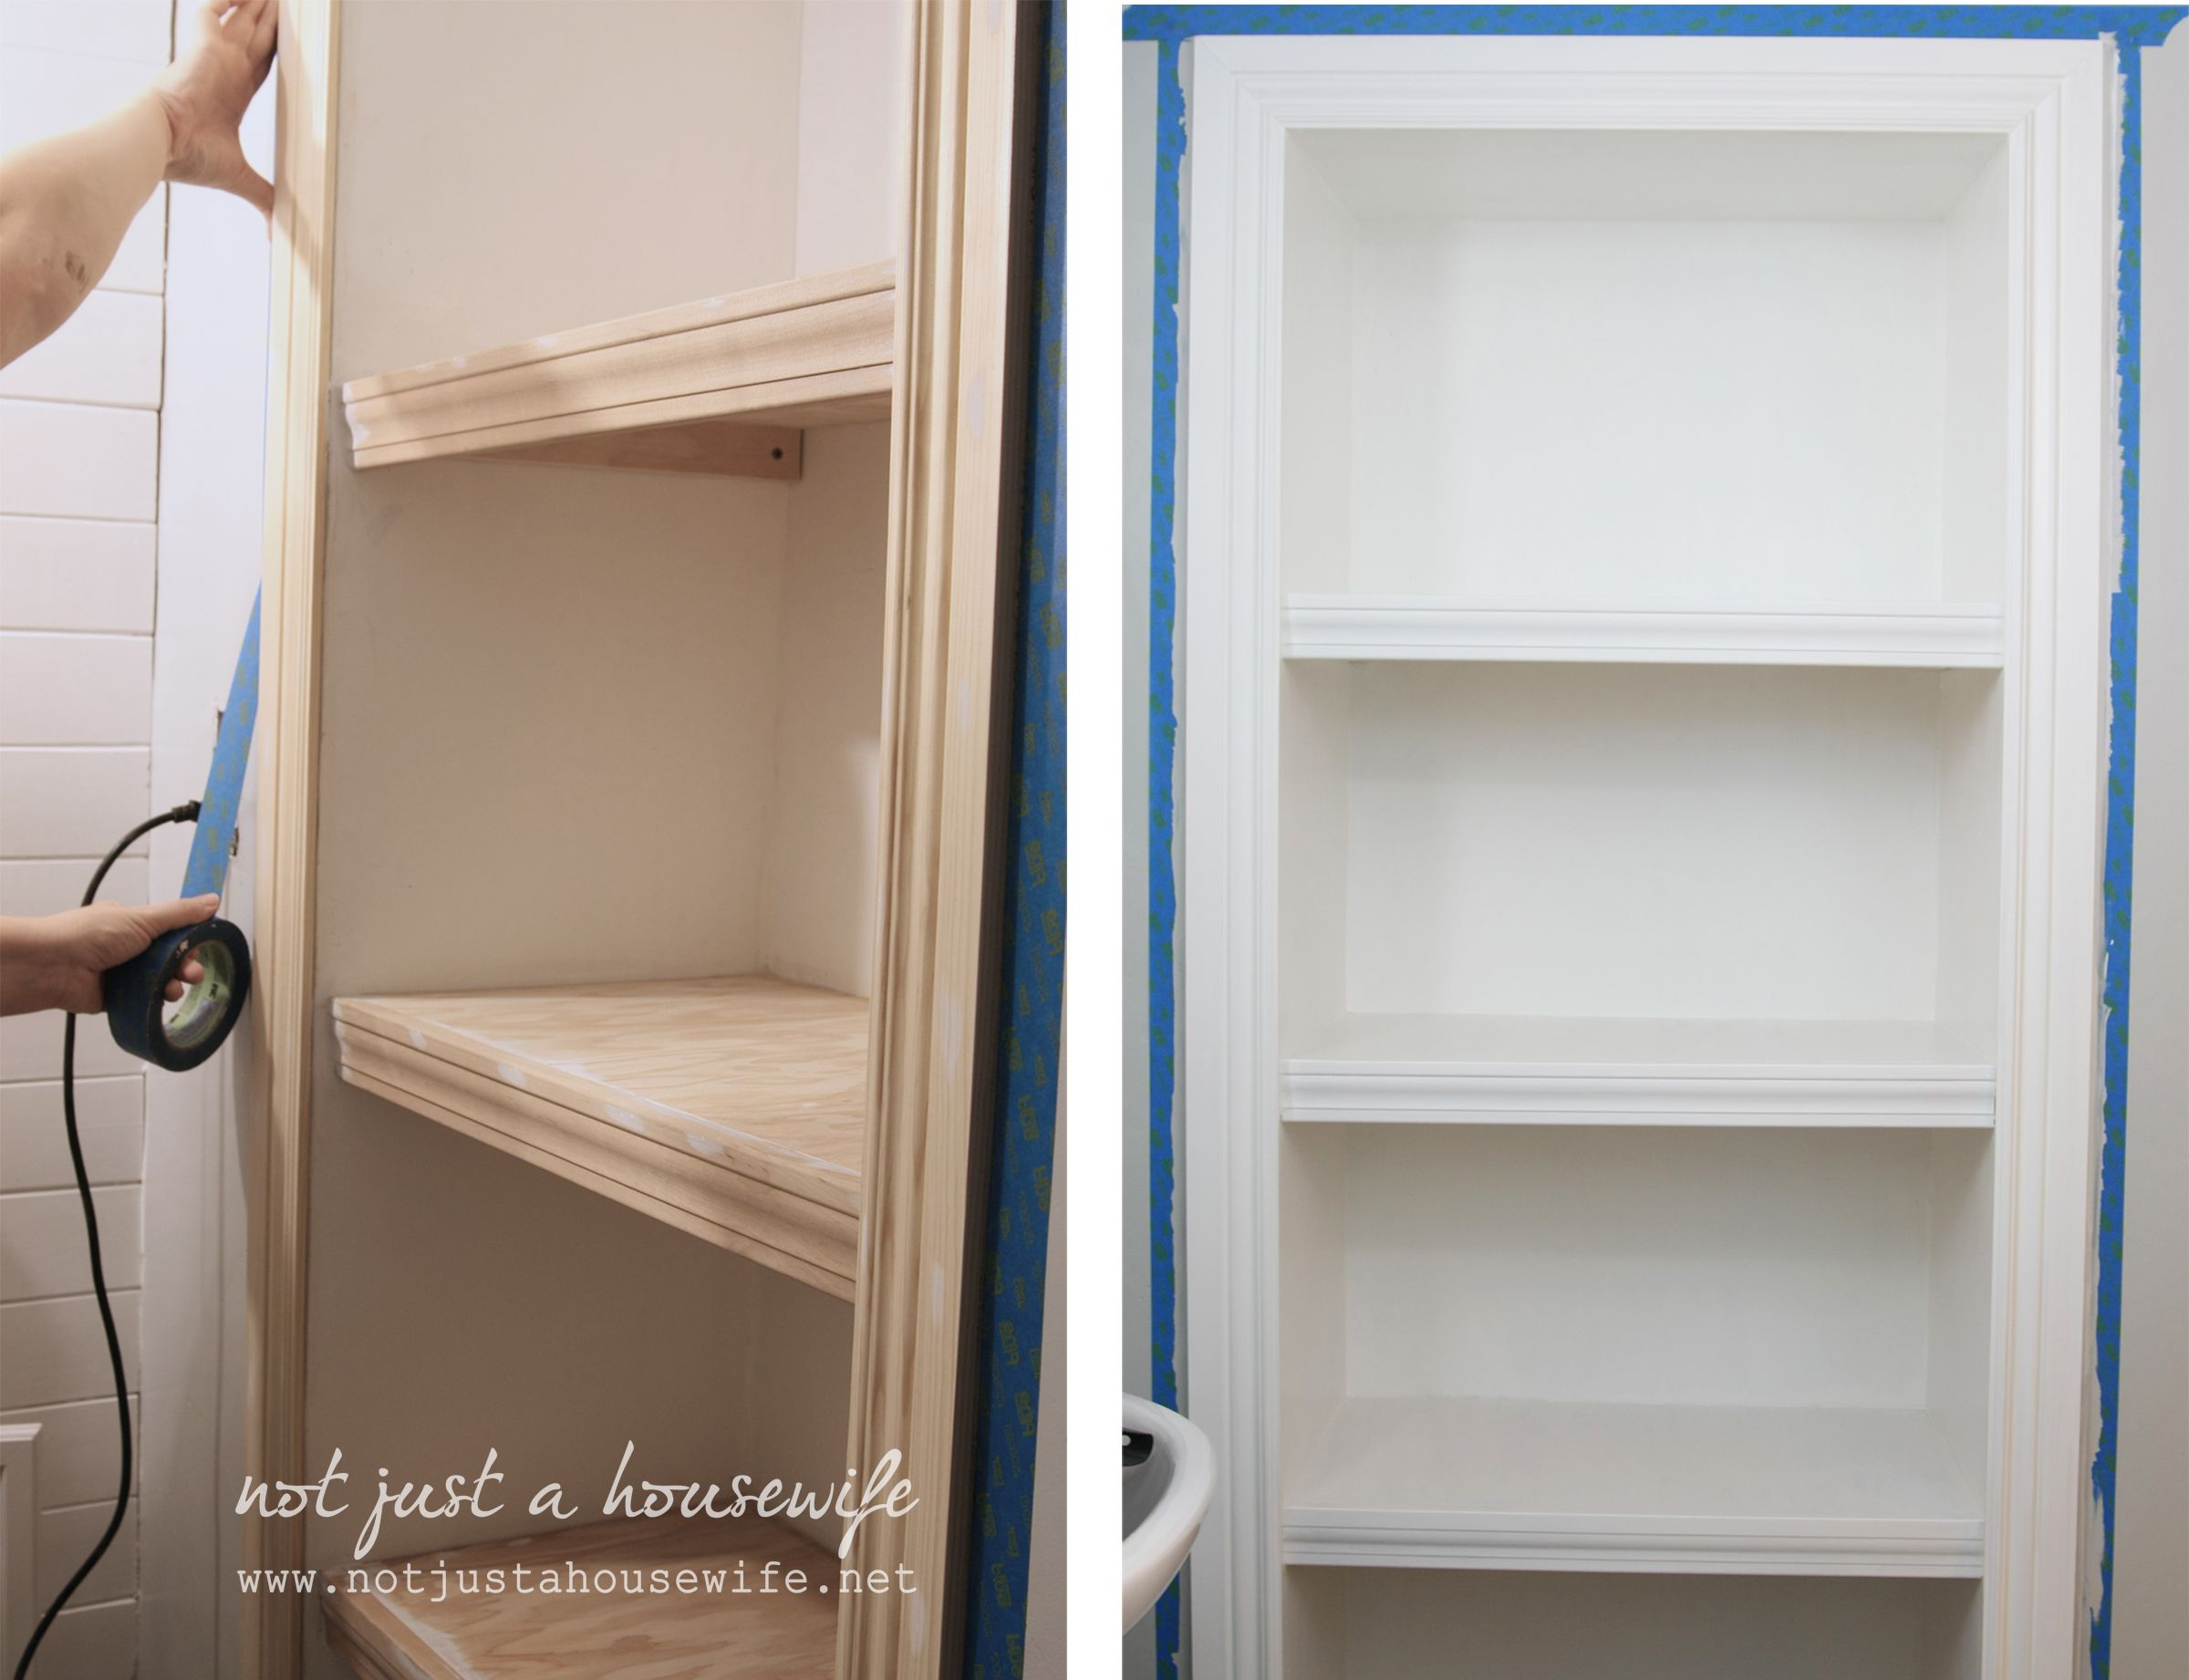 painting the finished wallinserted bathroom shelves